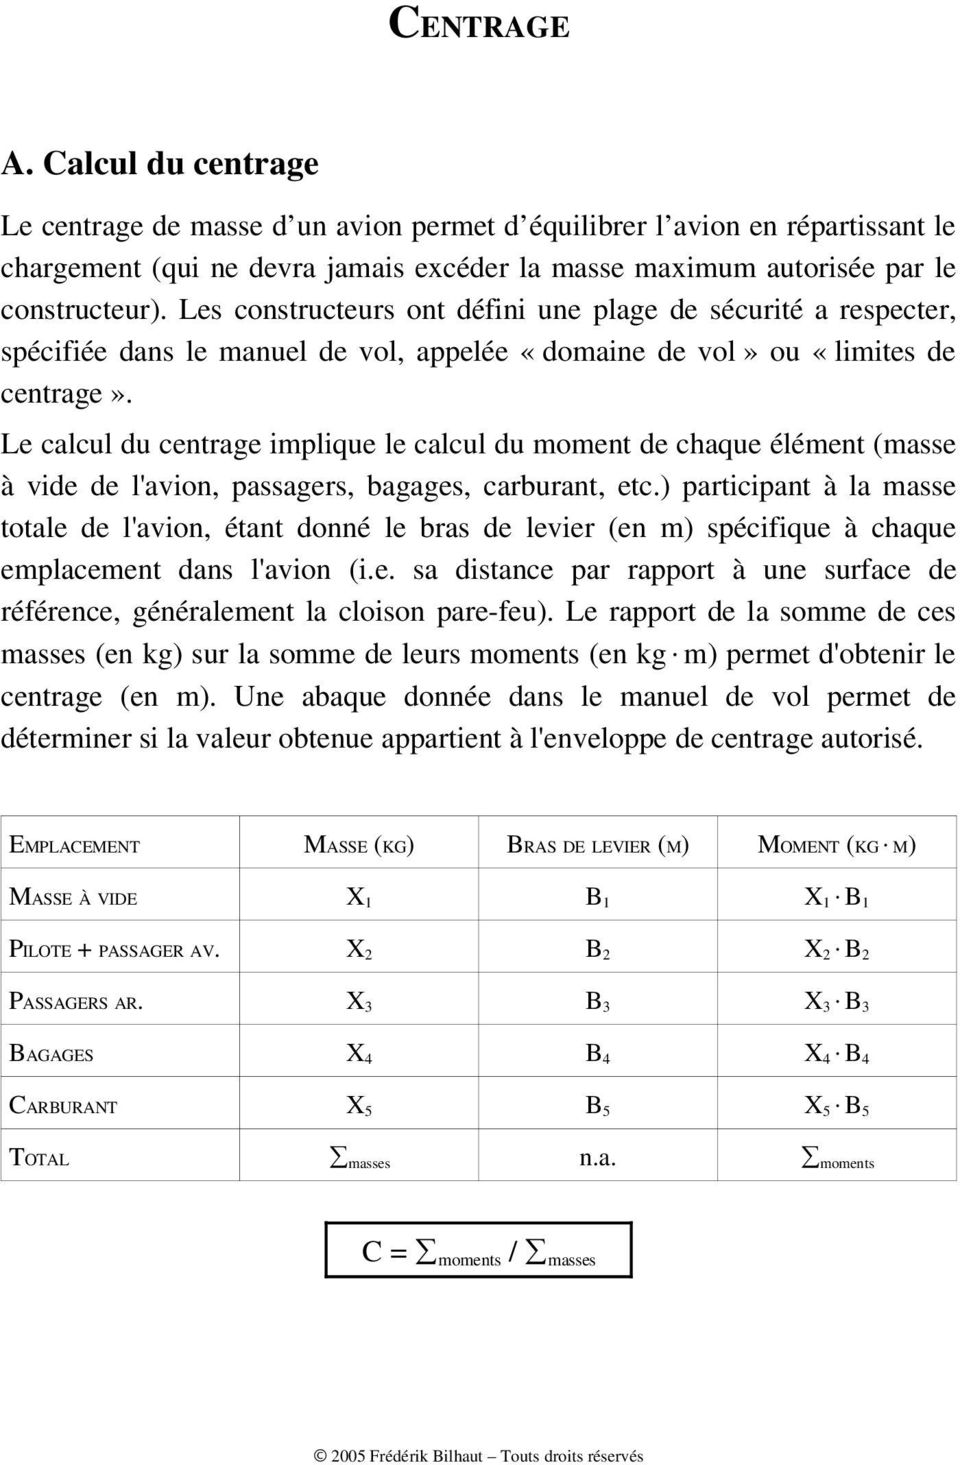 Le calcul du centrage implique le calcul du moment de chaque élément (masse à vide de l'avion, passagers, bagages, carburant, etc.